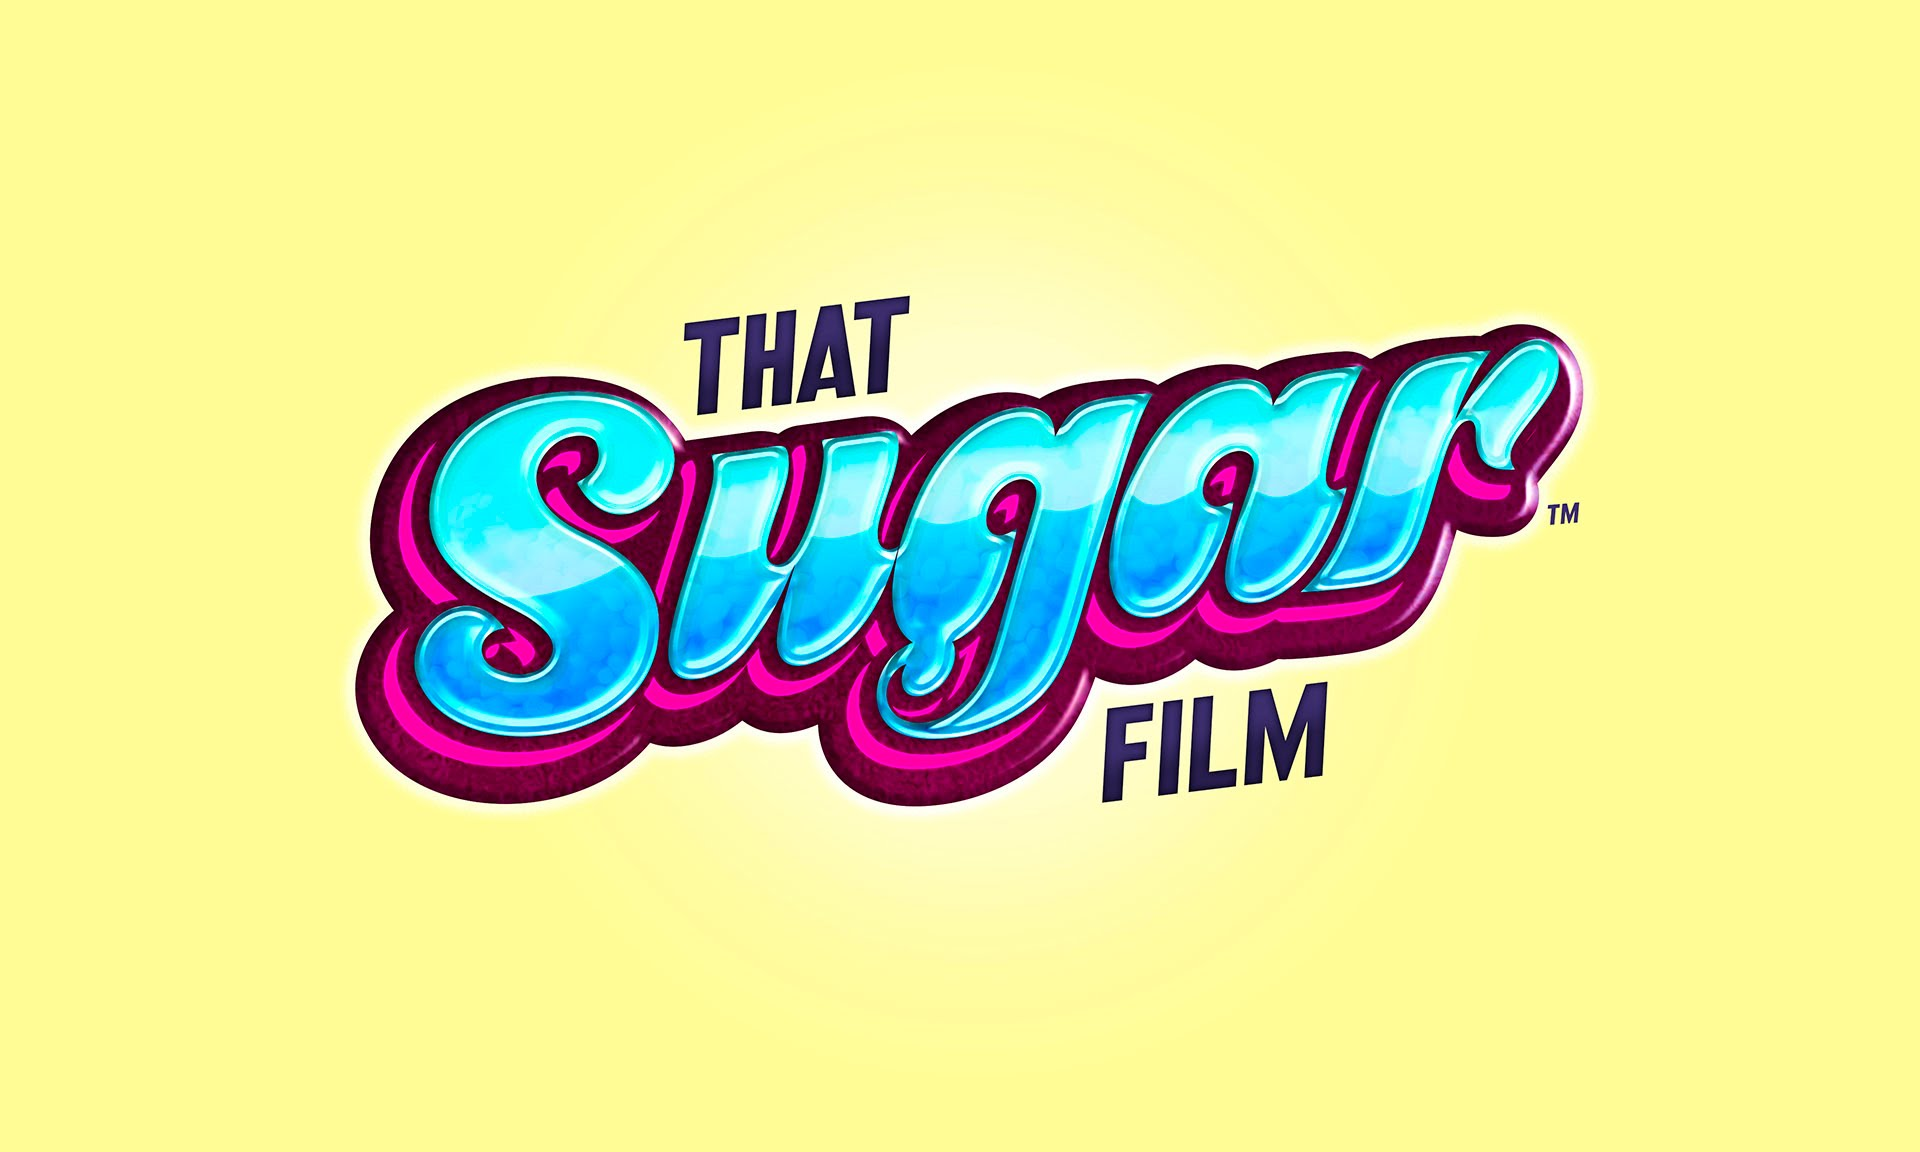 Movies clipart movie preview. That sugar film official